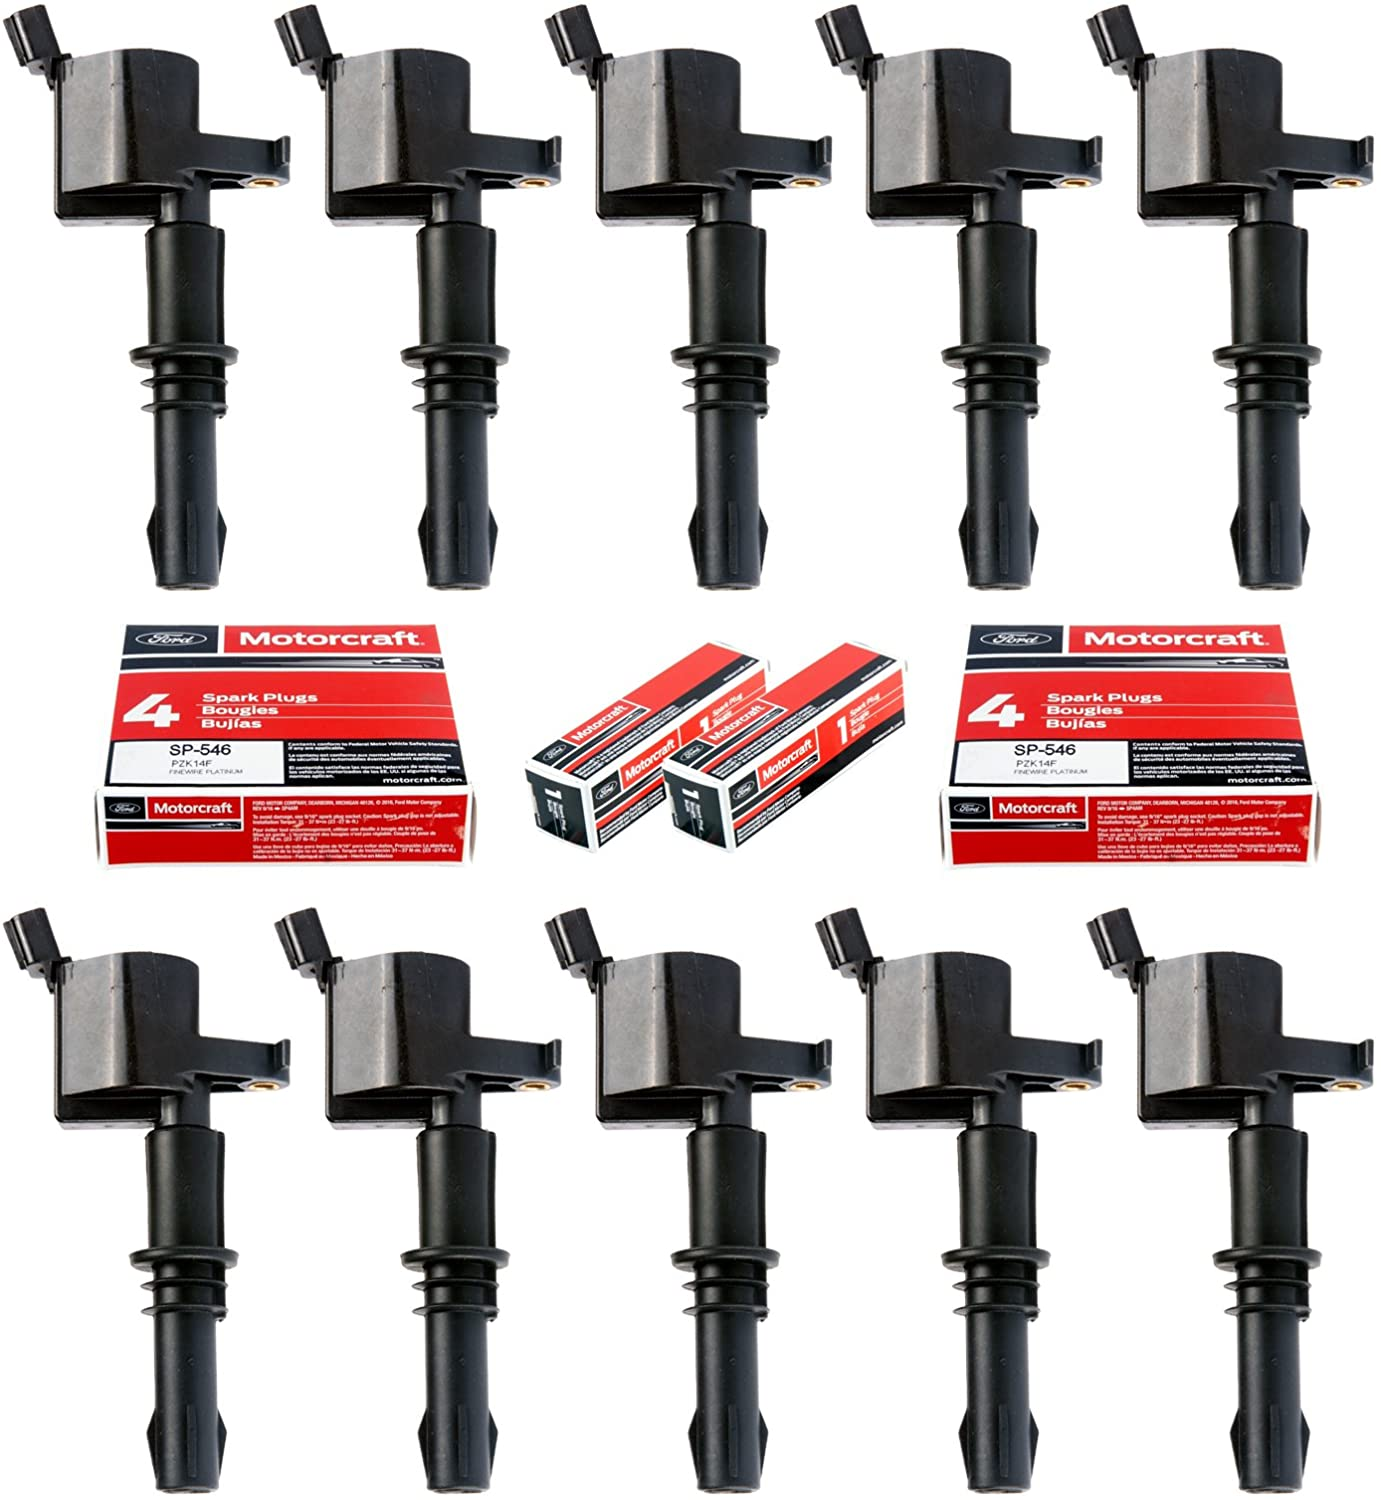 MAS Set of 10 SP546 Motorcraft Spark Plugs and 10 Straight Boot Ignition Coils DG511 Compatible with Ford Lincoln Mercury V8 V10 4.6l 5.4l 6.8l 3L3E12A366CA 5C1584 C1541 FD-508 UF-537